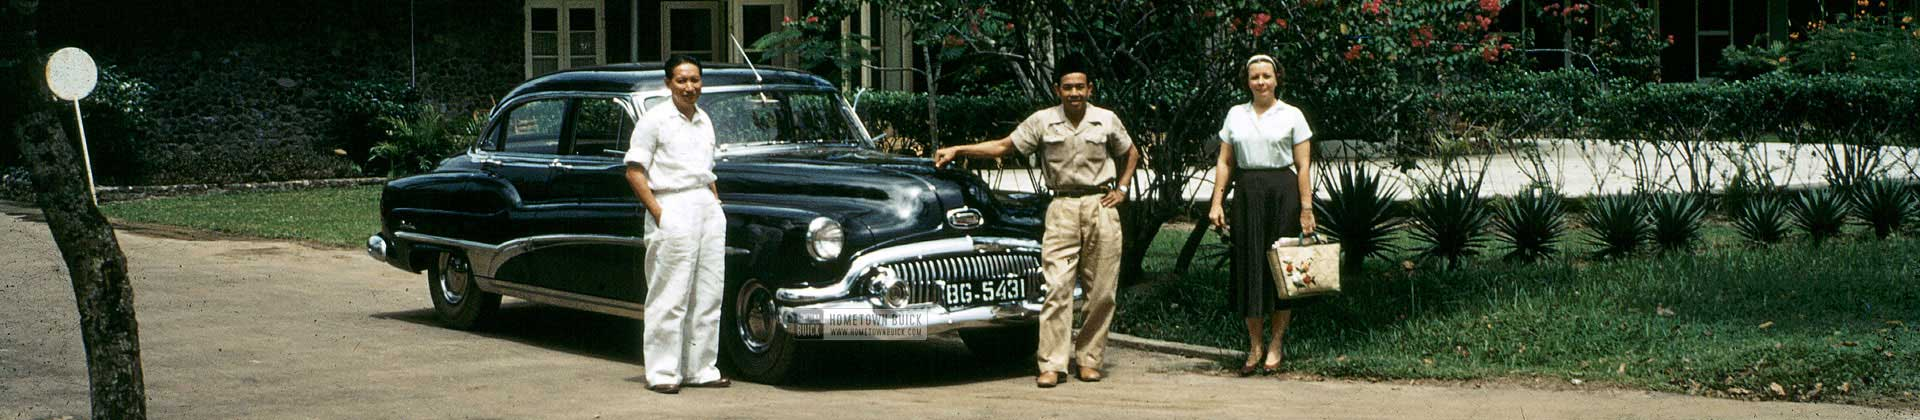 1951 Buick Banner